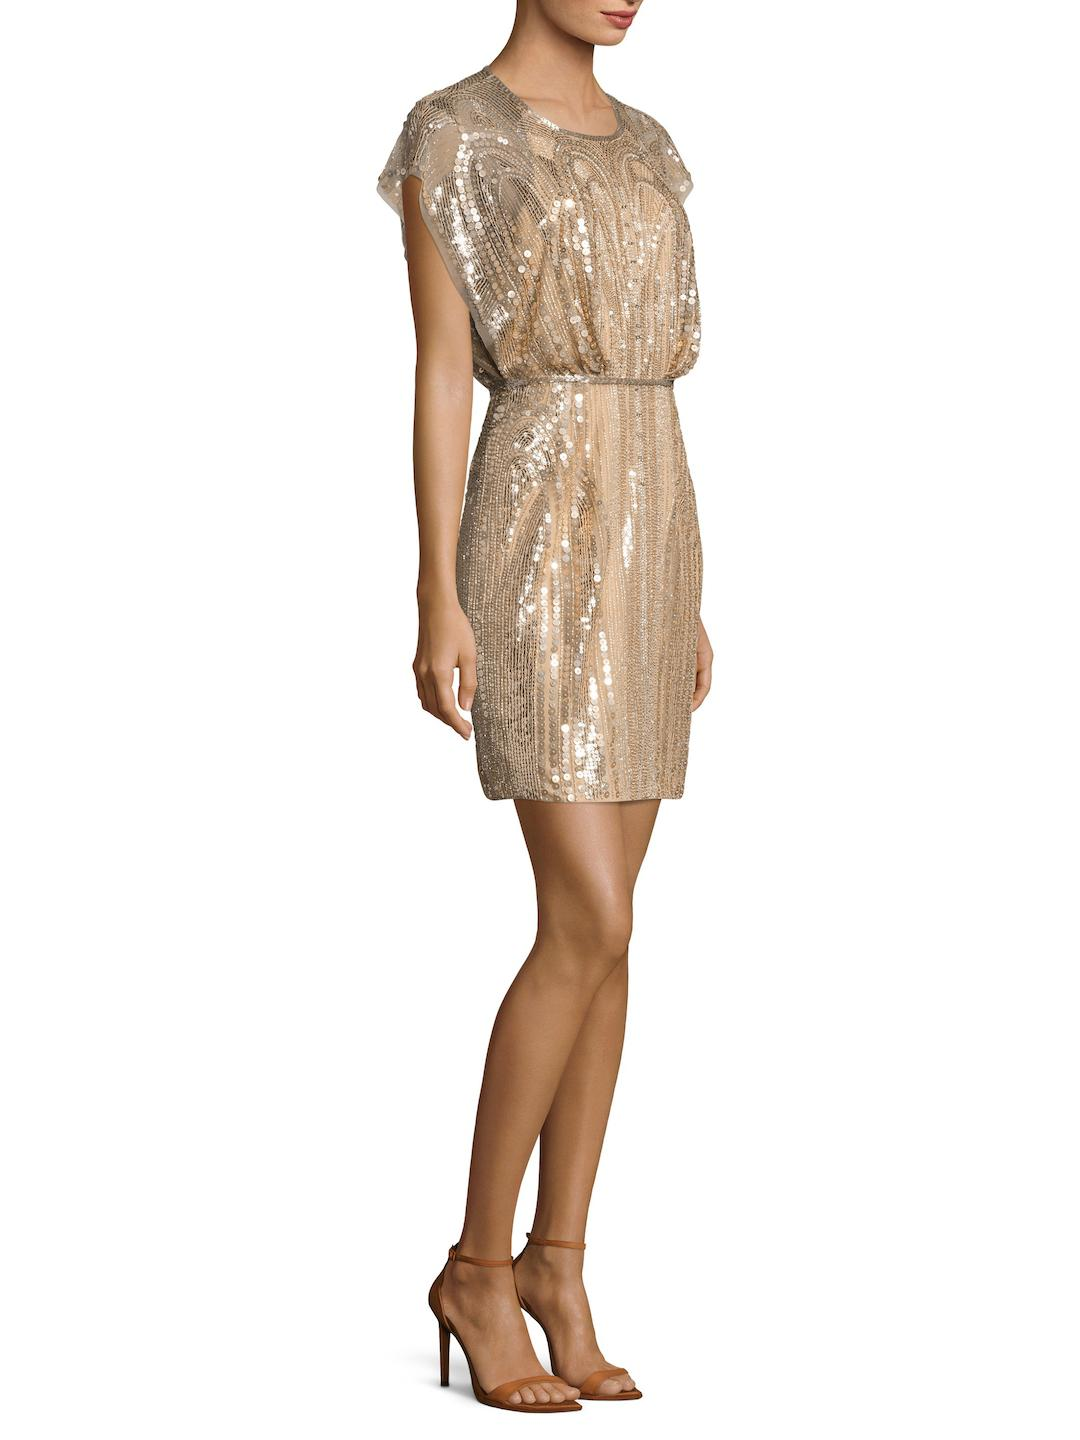 Lyst - Jenny Packham Sequin Cap Sleeve Cocktail Dress in Natural